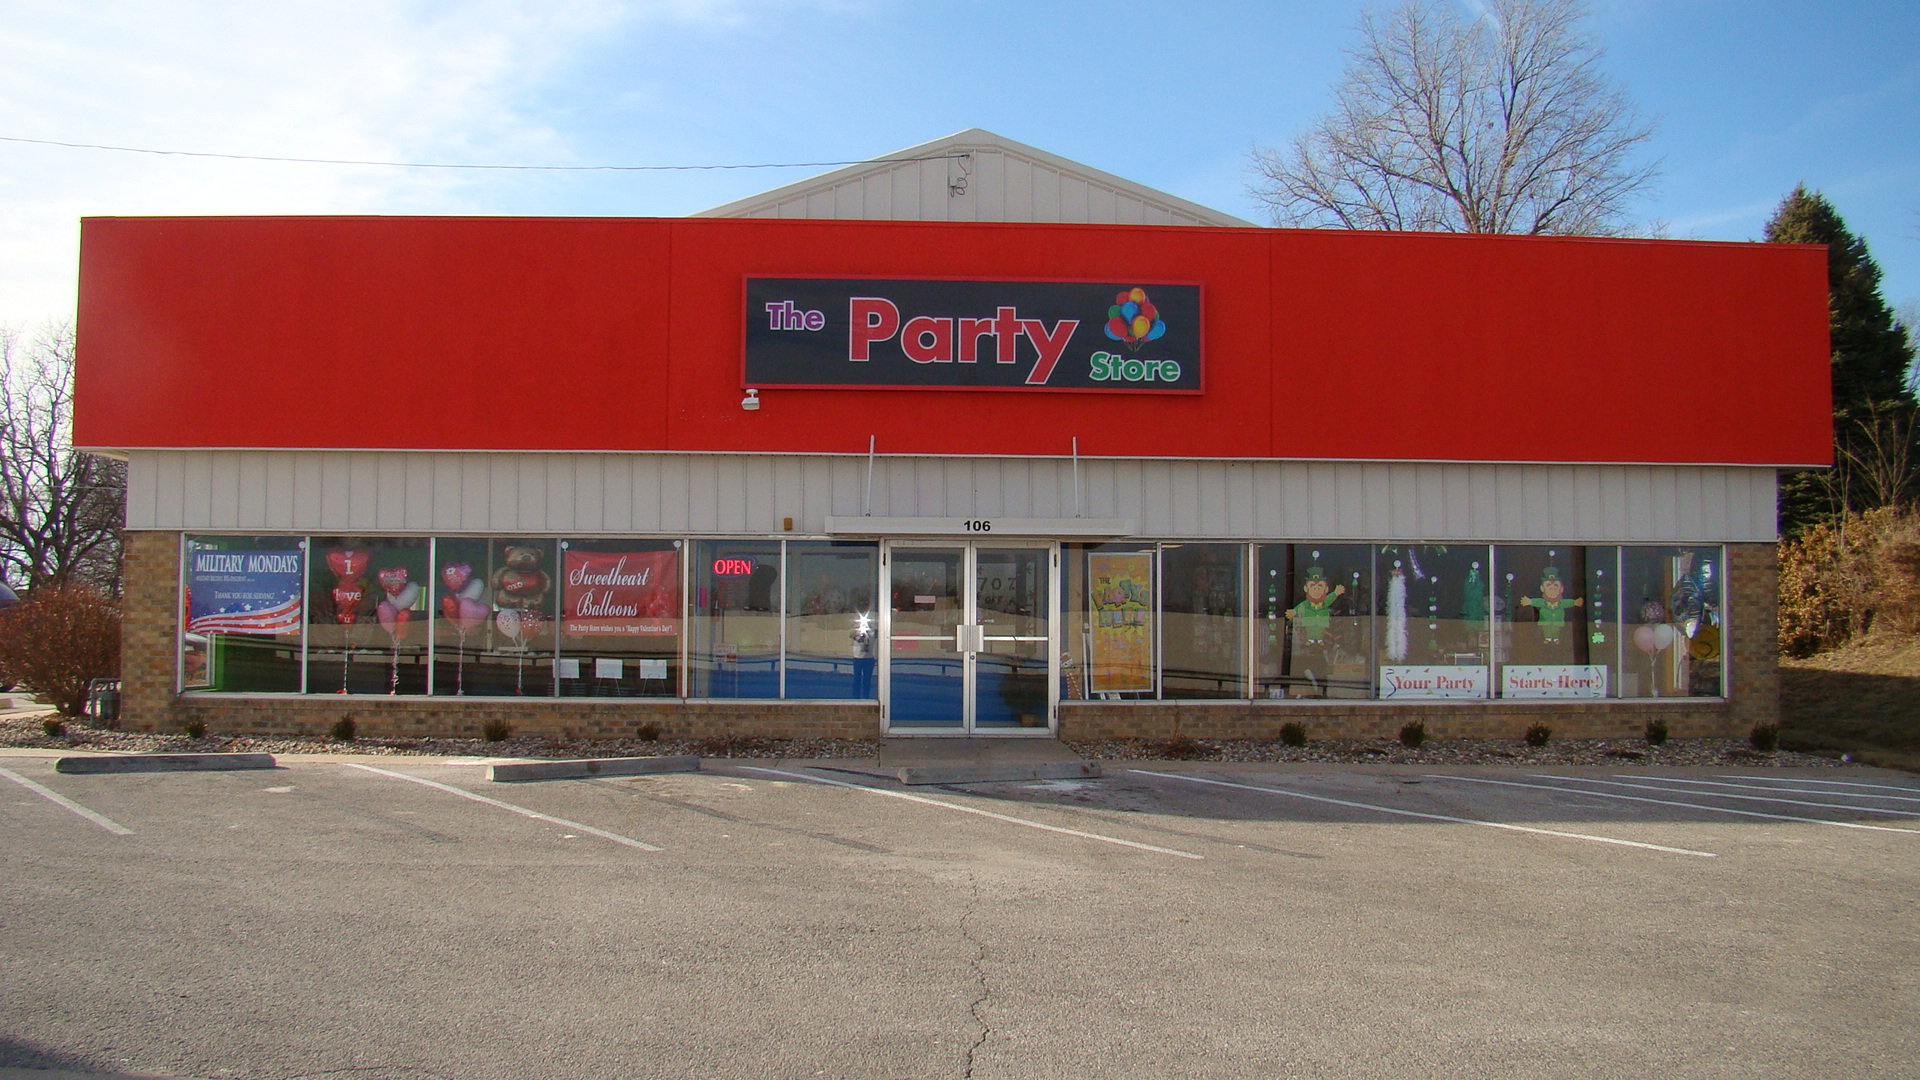 The Party Store, St. Joseph MO